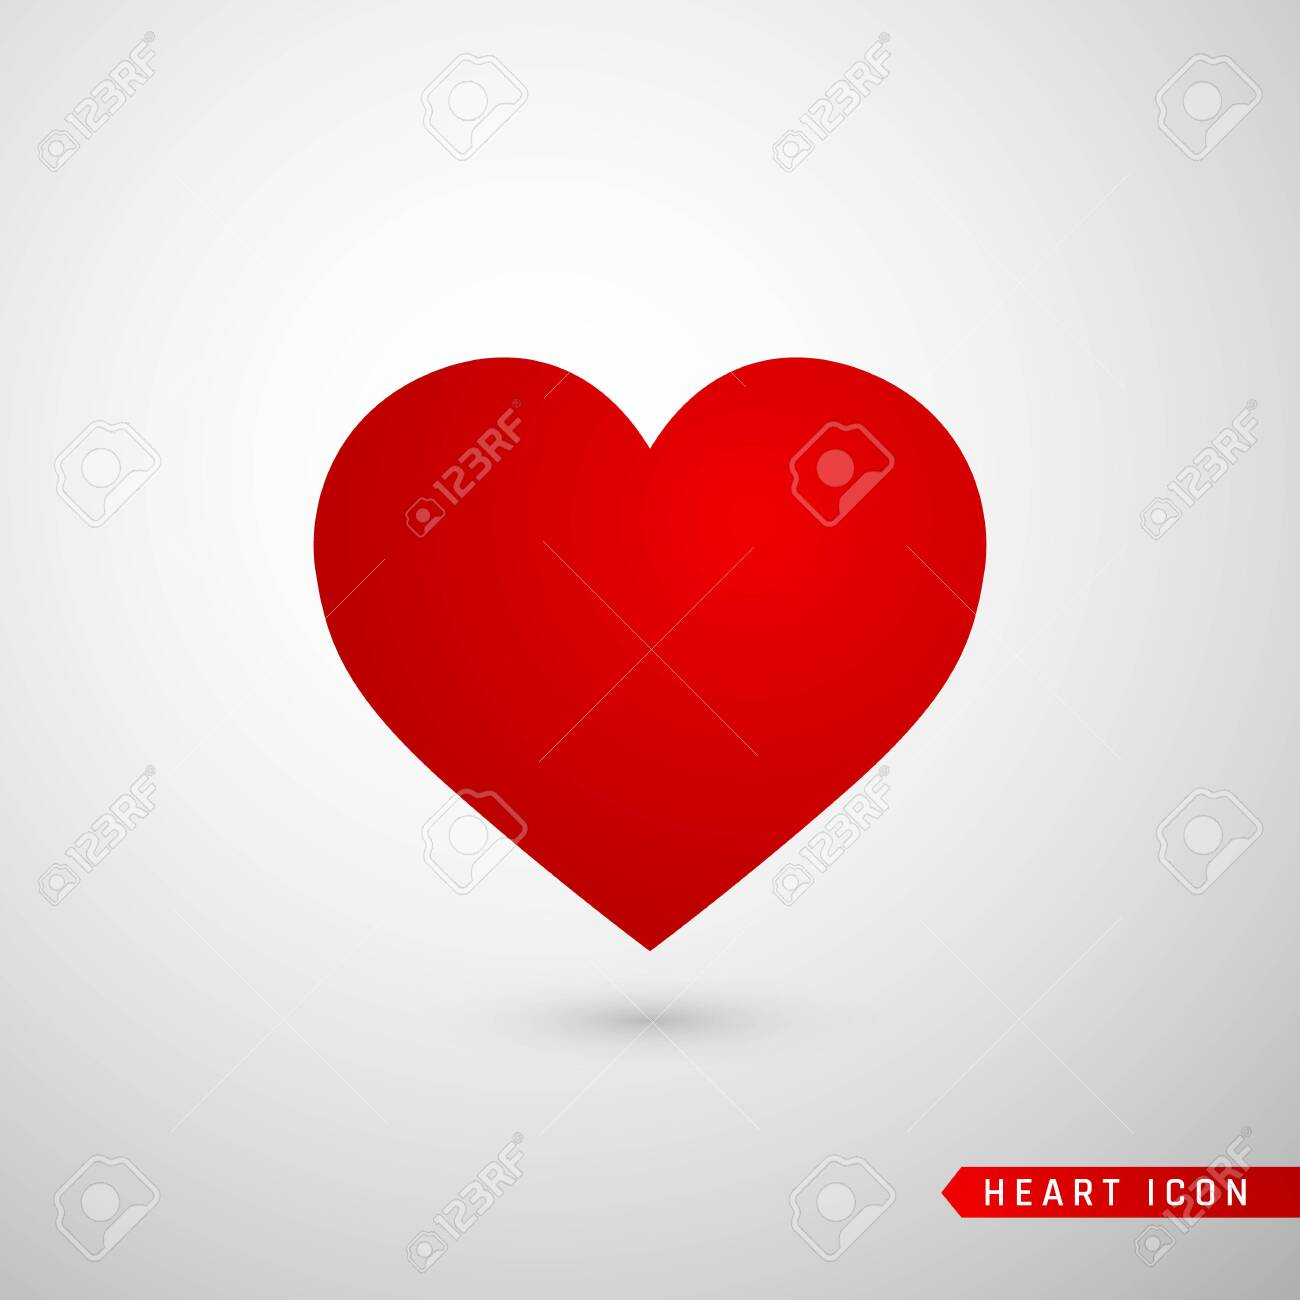 Heart flat icon. Love symbol isolated on gray background. Vector illustration. - 135796150